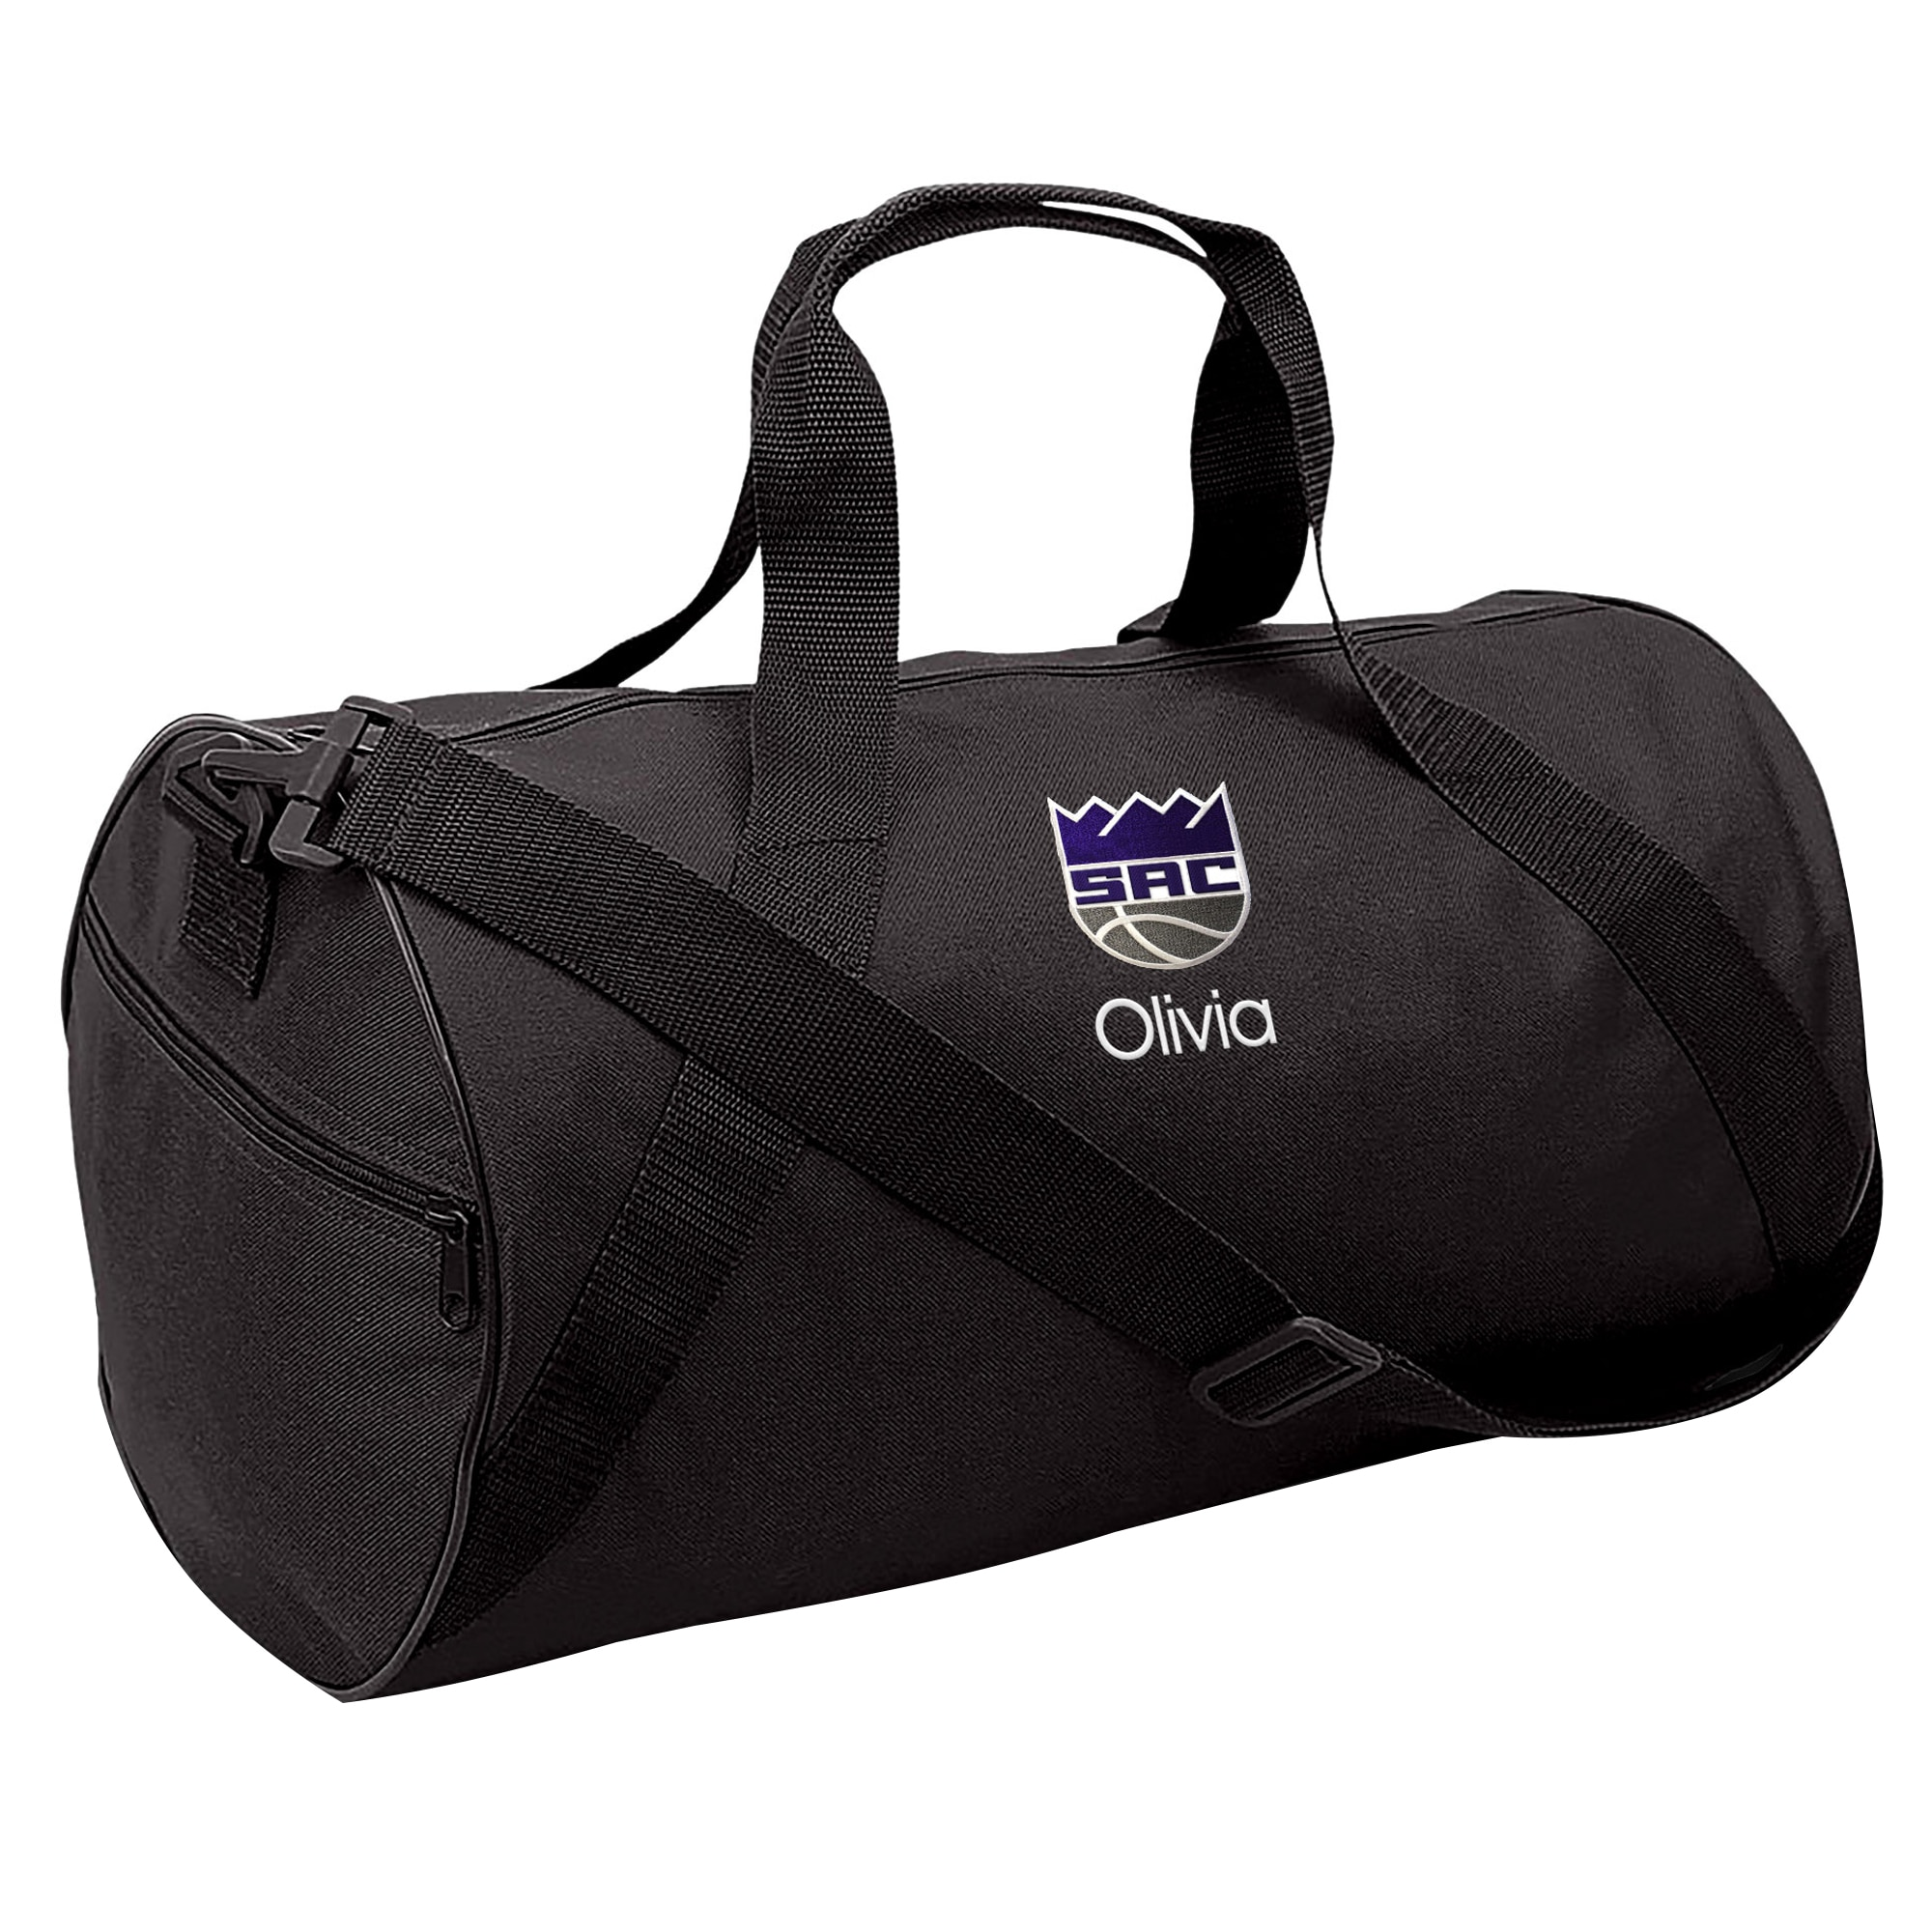 Sacramento Kings Youth Personalized Duffle Bag - Black